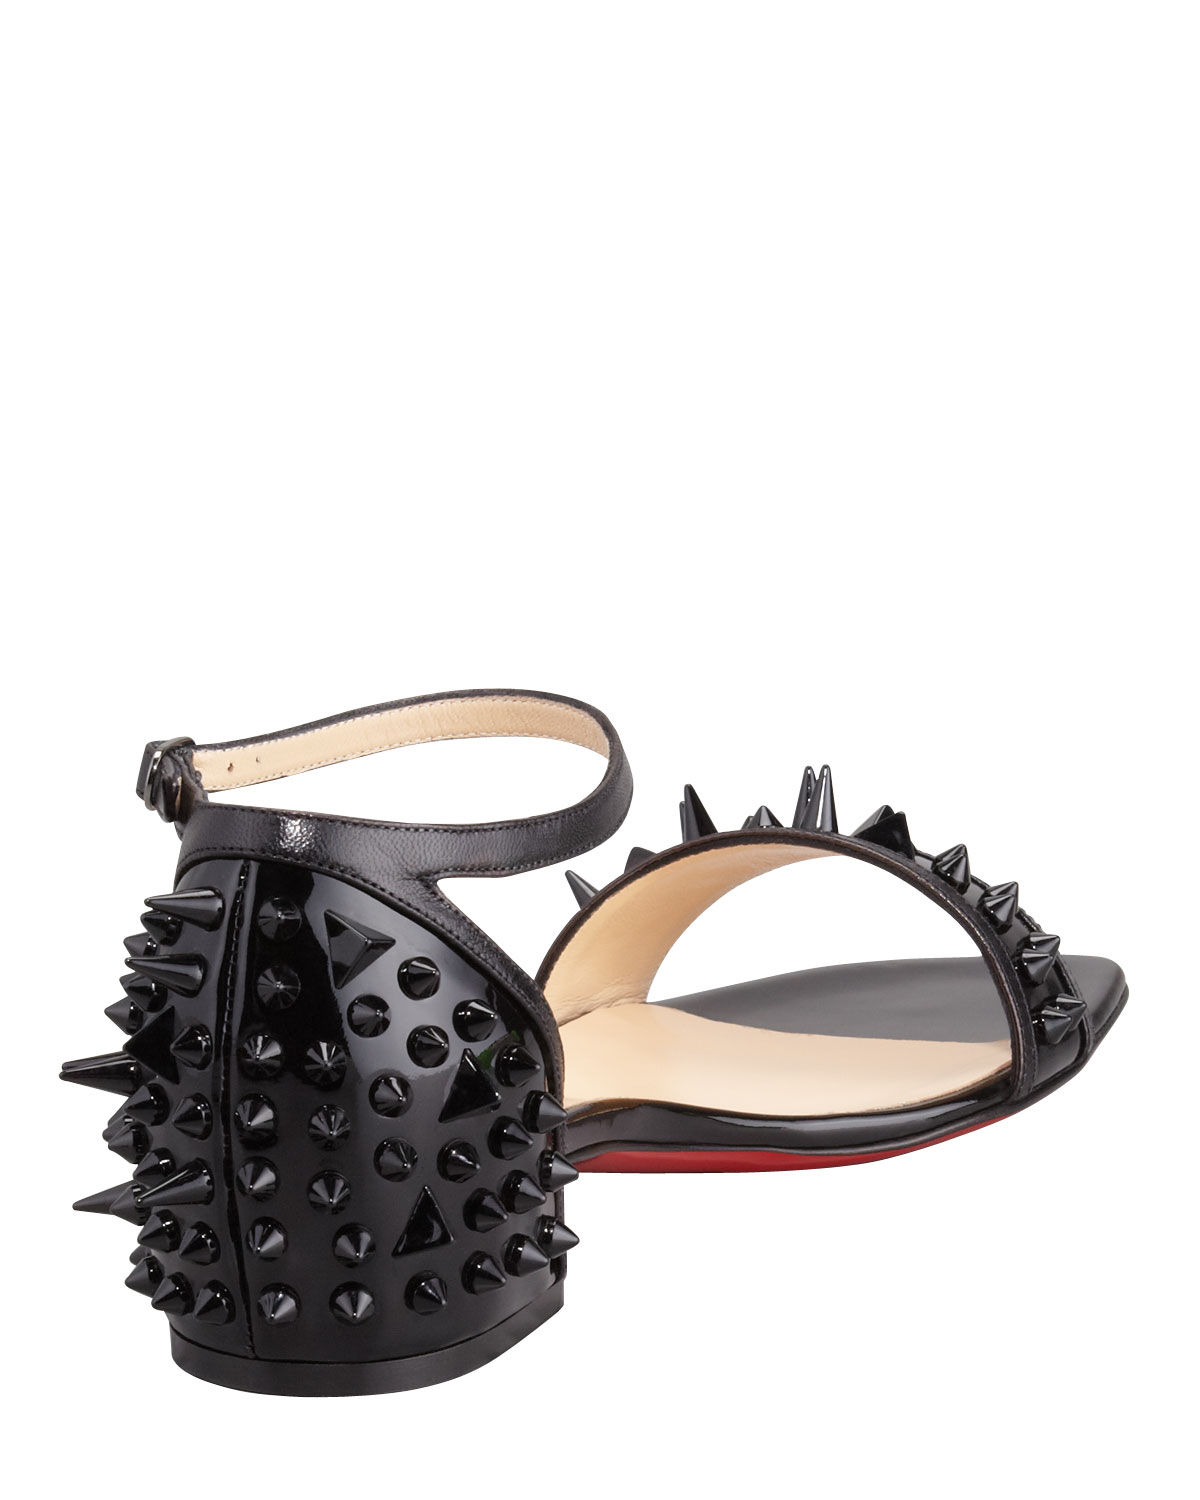 Christian Louboutin Druide Spiked Patent Flat Sandal In